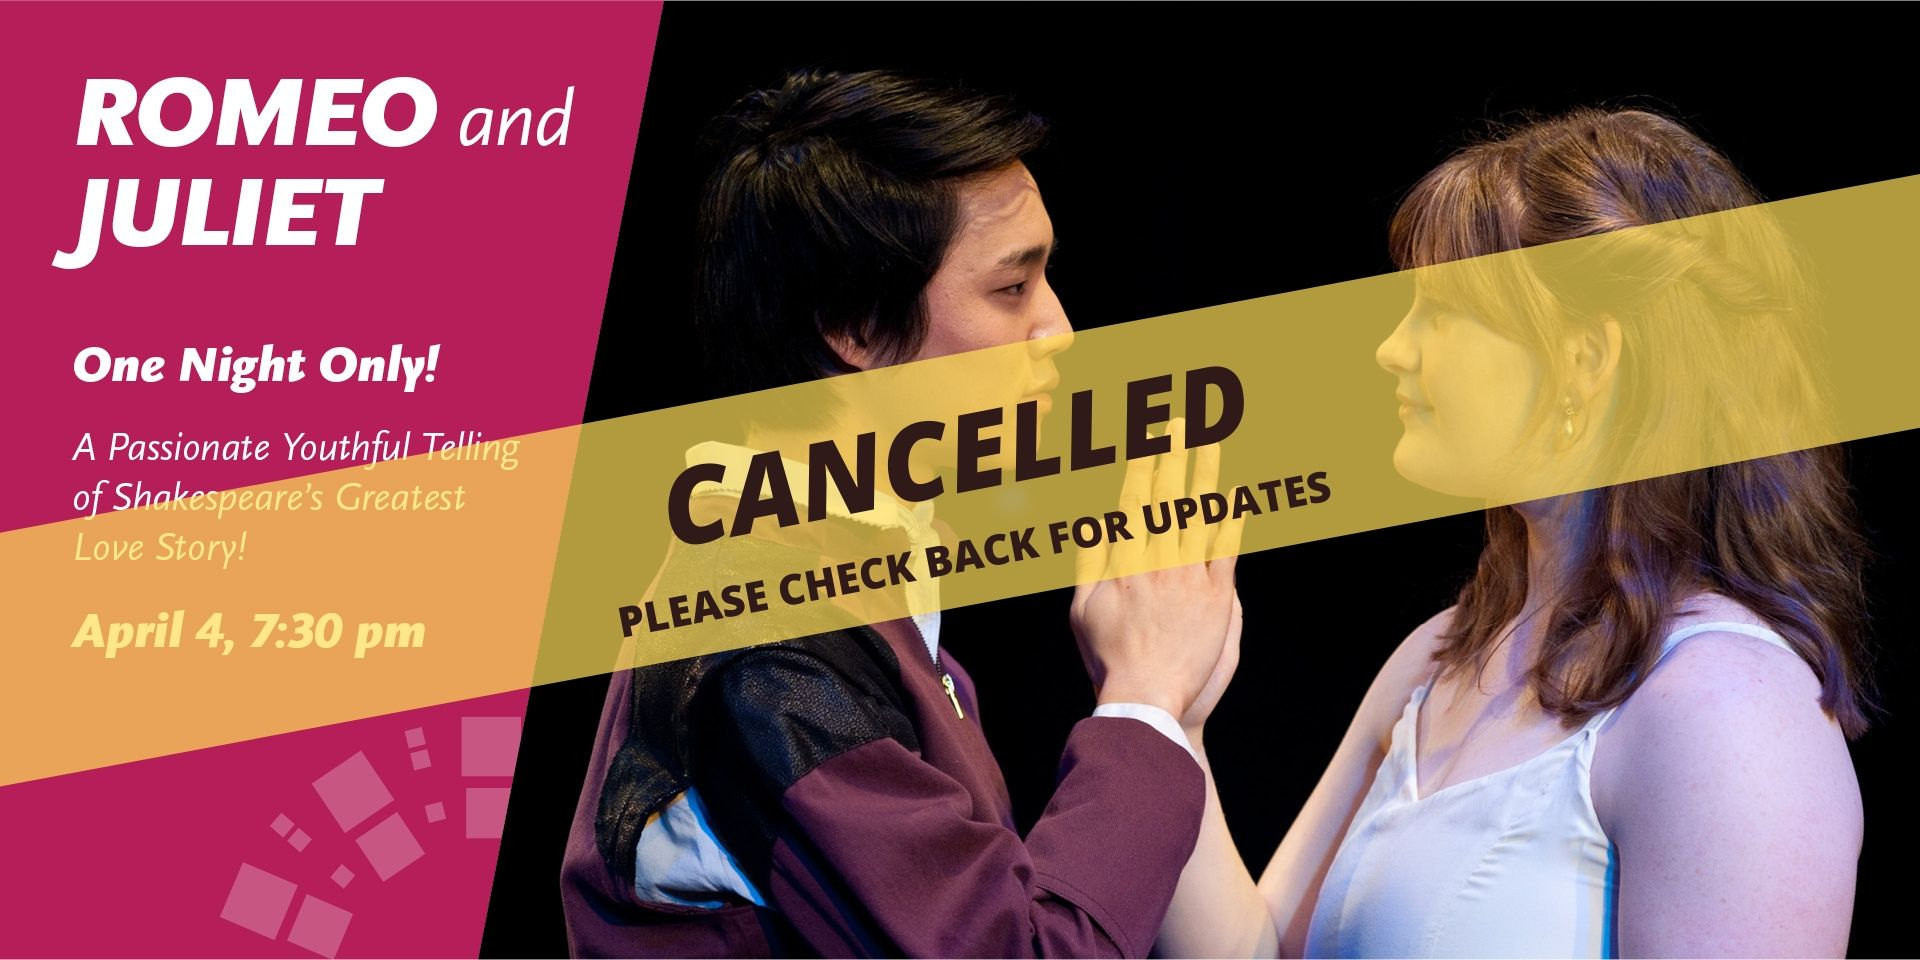 Romeo & Juliet is Cancelled -- Please check back for updates